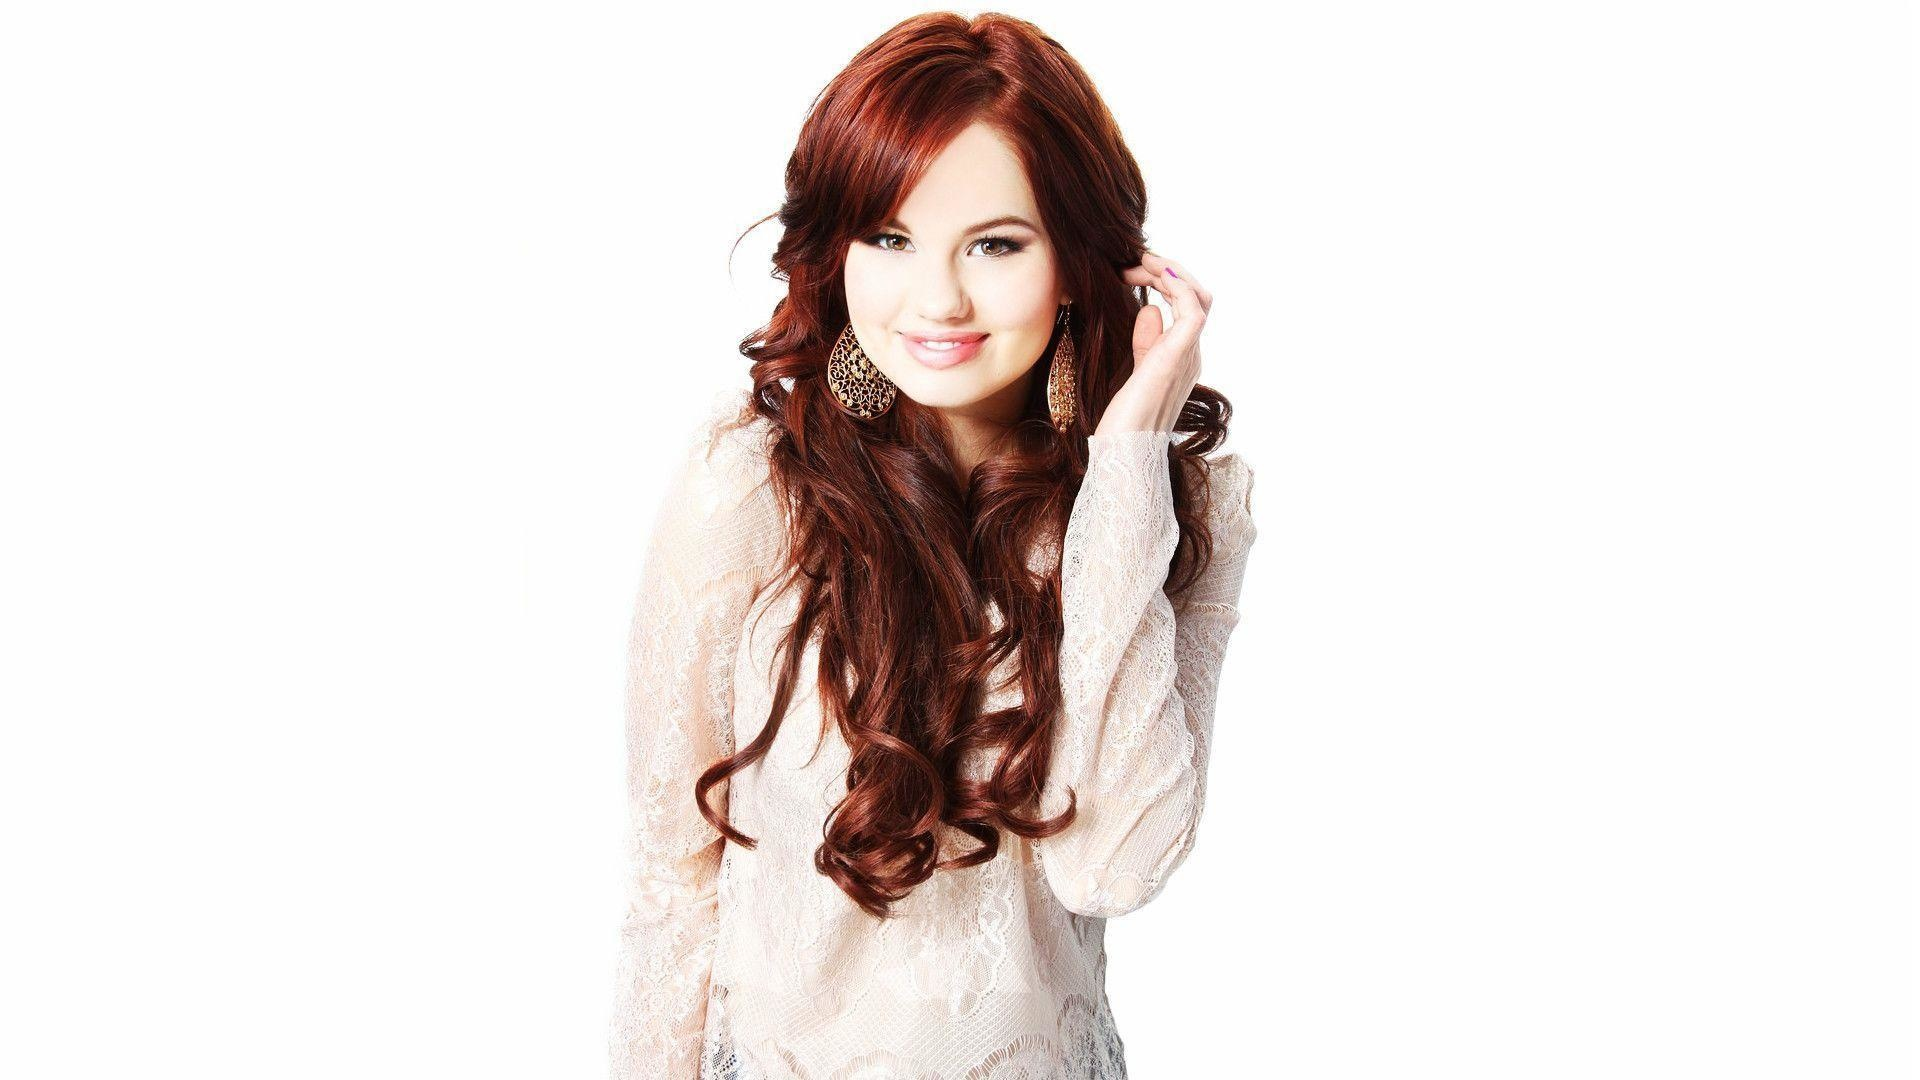 Debby ryan smile red head actress wallpaper 1920x1080 hd debby ryan smile red head actress wallpaper voltagebd Gallery